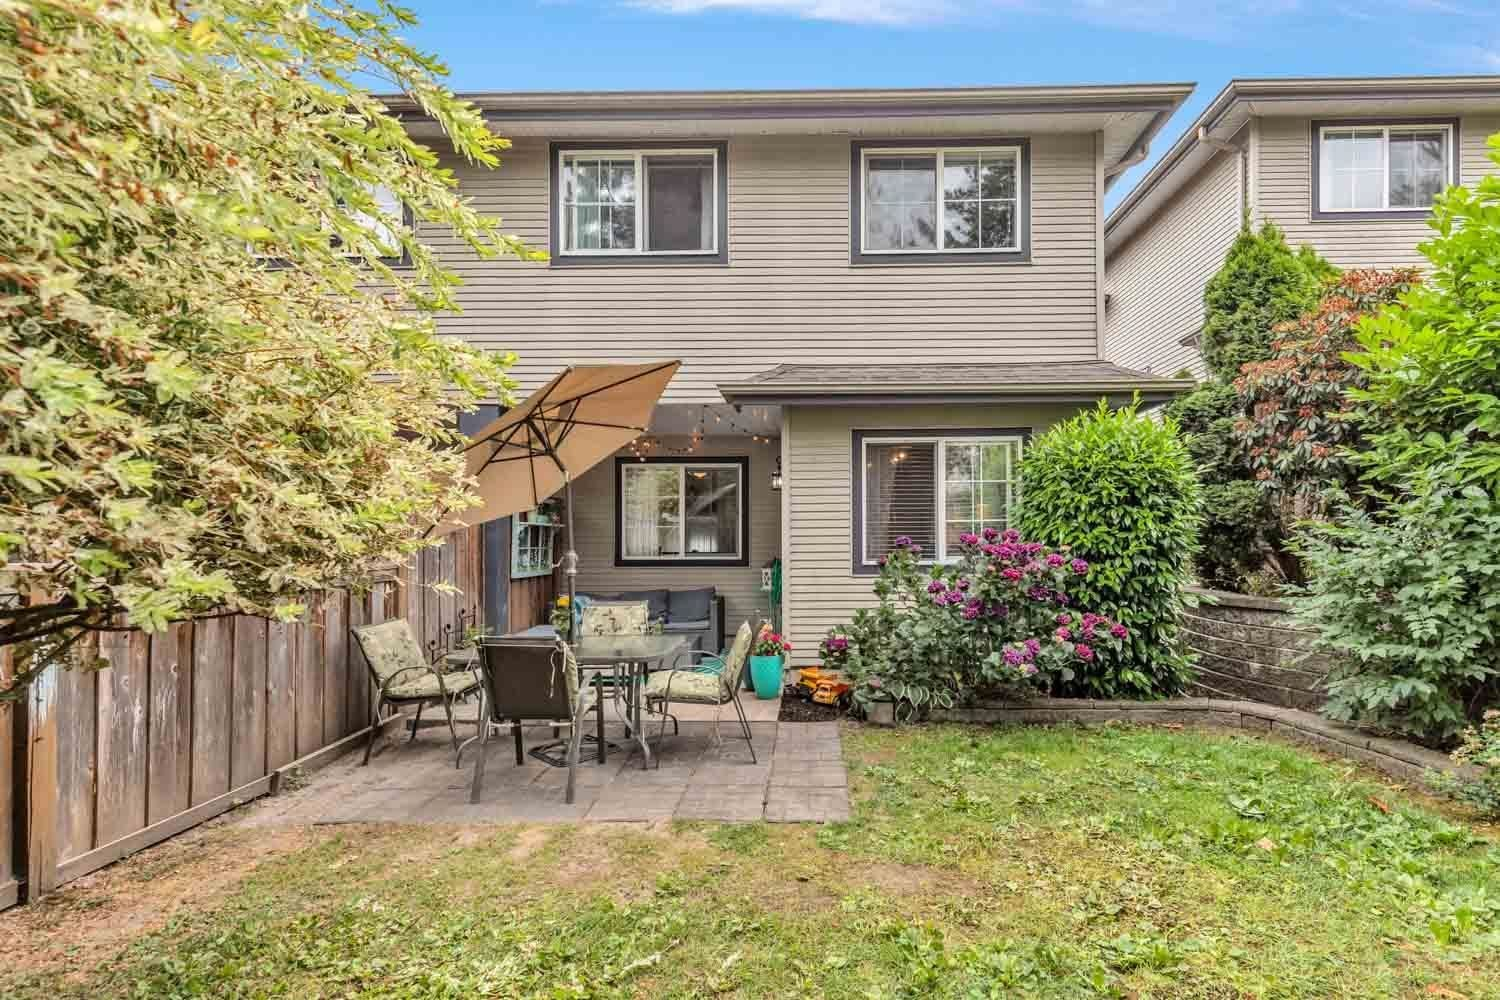 35 11229 232 STREET - East Central Townhouse for sale, 3 Bedrooms (R2604128) - #23